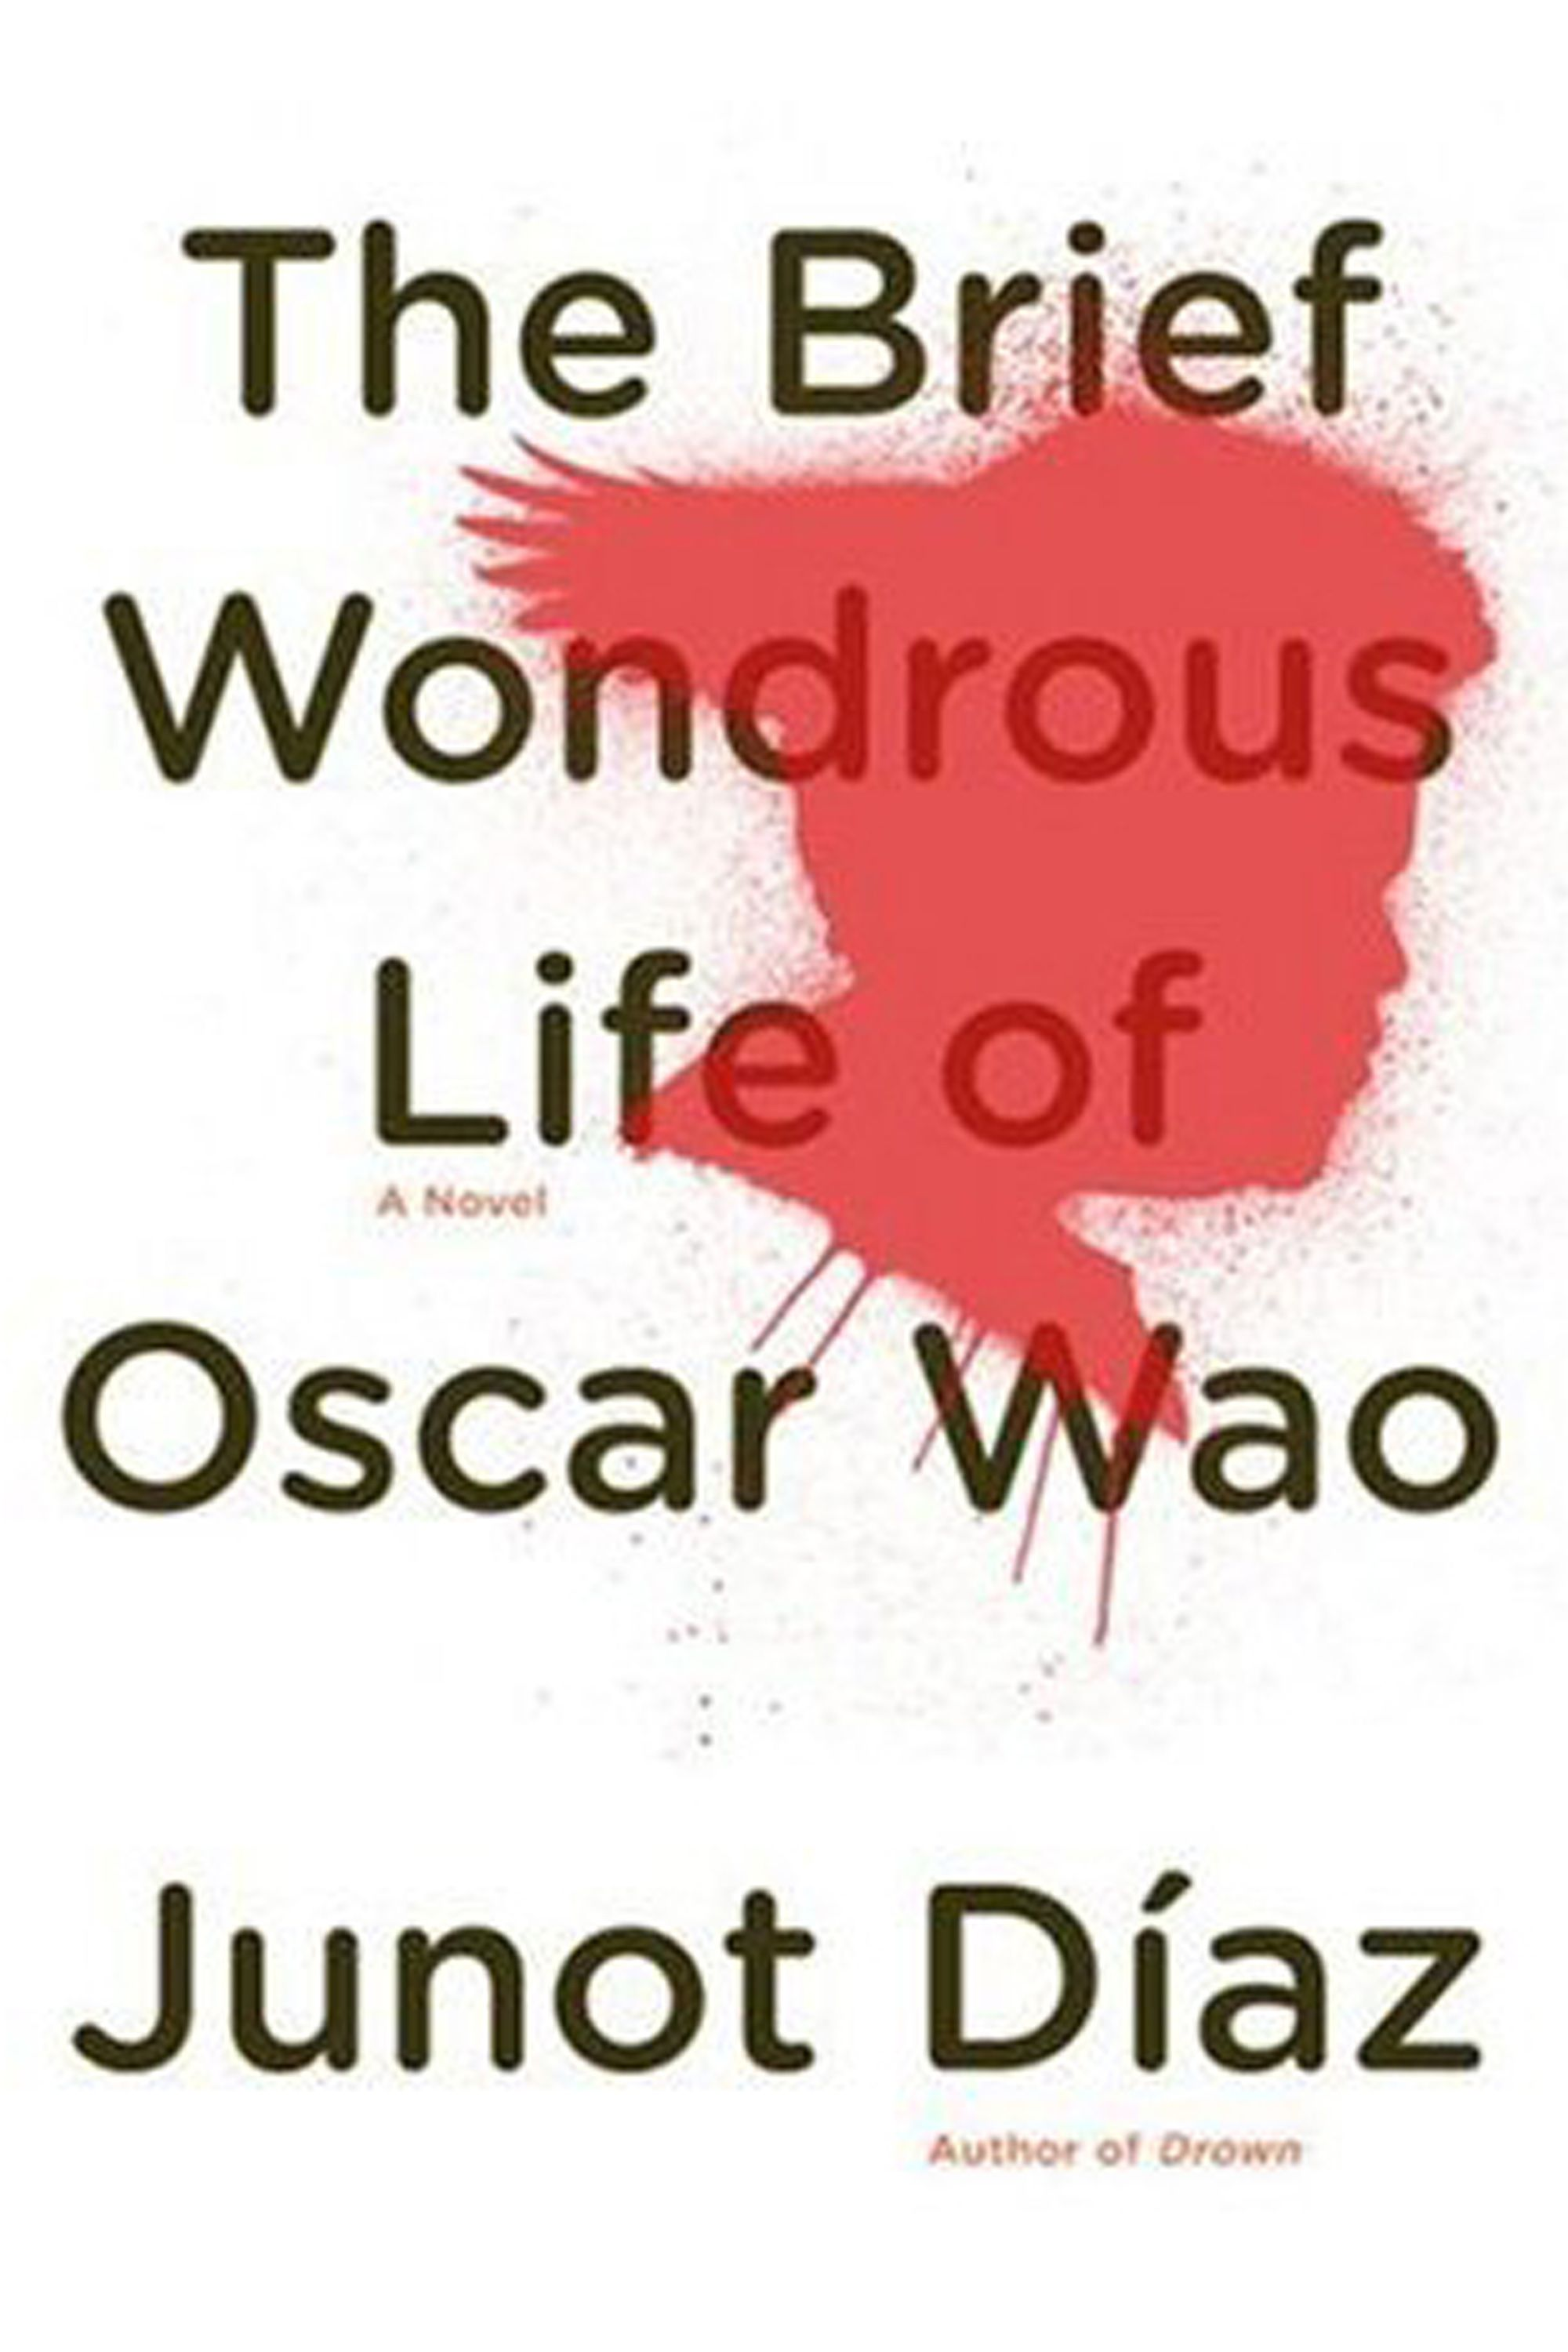 "<p><a href=""https://www.amazon.com/Brief-Wondrous-Life-Oscar-Wao-ebook/dp/B000UZJRGI"" data-tracking-id=""recirc-text-link"">This book</a> is about a lot of things at once: what it means to be/become a man; the awkwardness of not belonging—to your family, to your culture, to yourself; comic books; and, yes, immigration. The many aspects this novel covers is its strength, as it underlines how immigration and the ""immigrant experience"" are just one facet of a complicated human life. —Lesley Nneka Arimah, author of <em data-redactor-tag=""em"" data-verified=""redactor""><a href=""https://www.amazon.com/dp/B01K1ATYFA"" data-tracking-id=""recirc-text-link"">What It Means When A Man Falls from the Sky</a></em><br></p>"